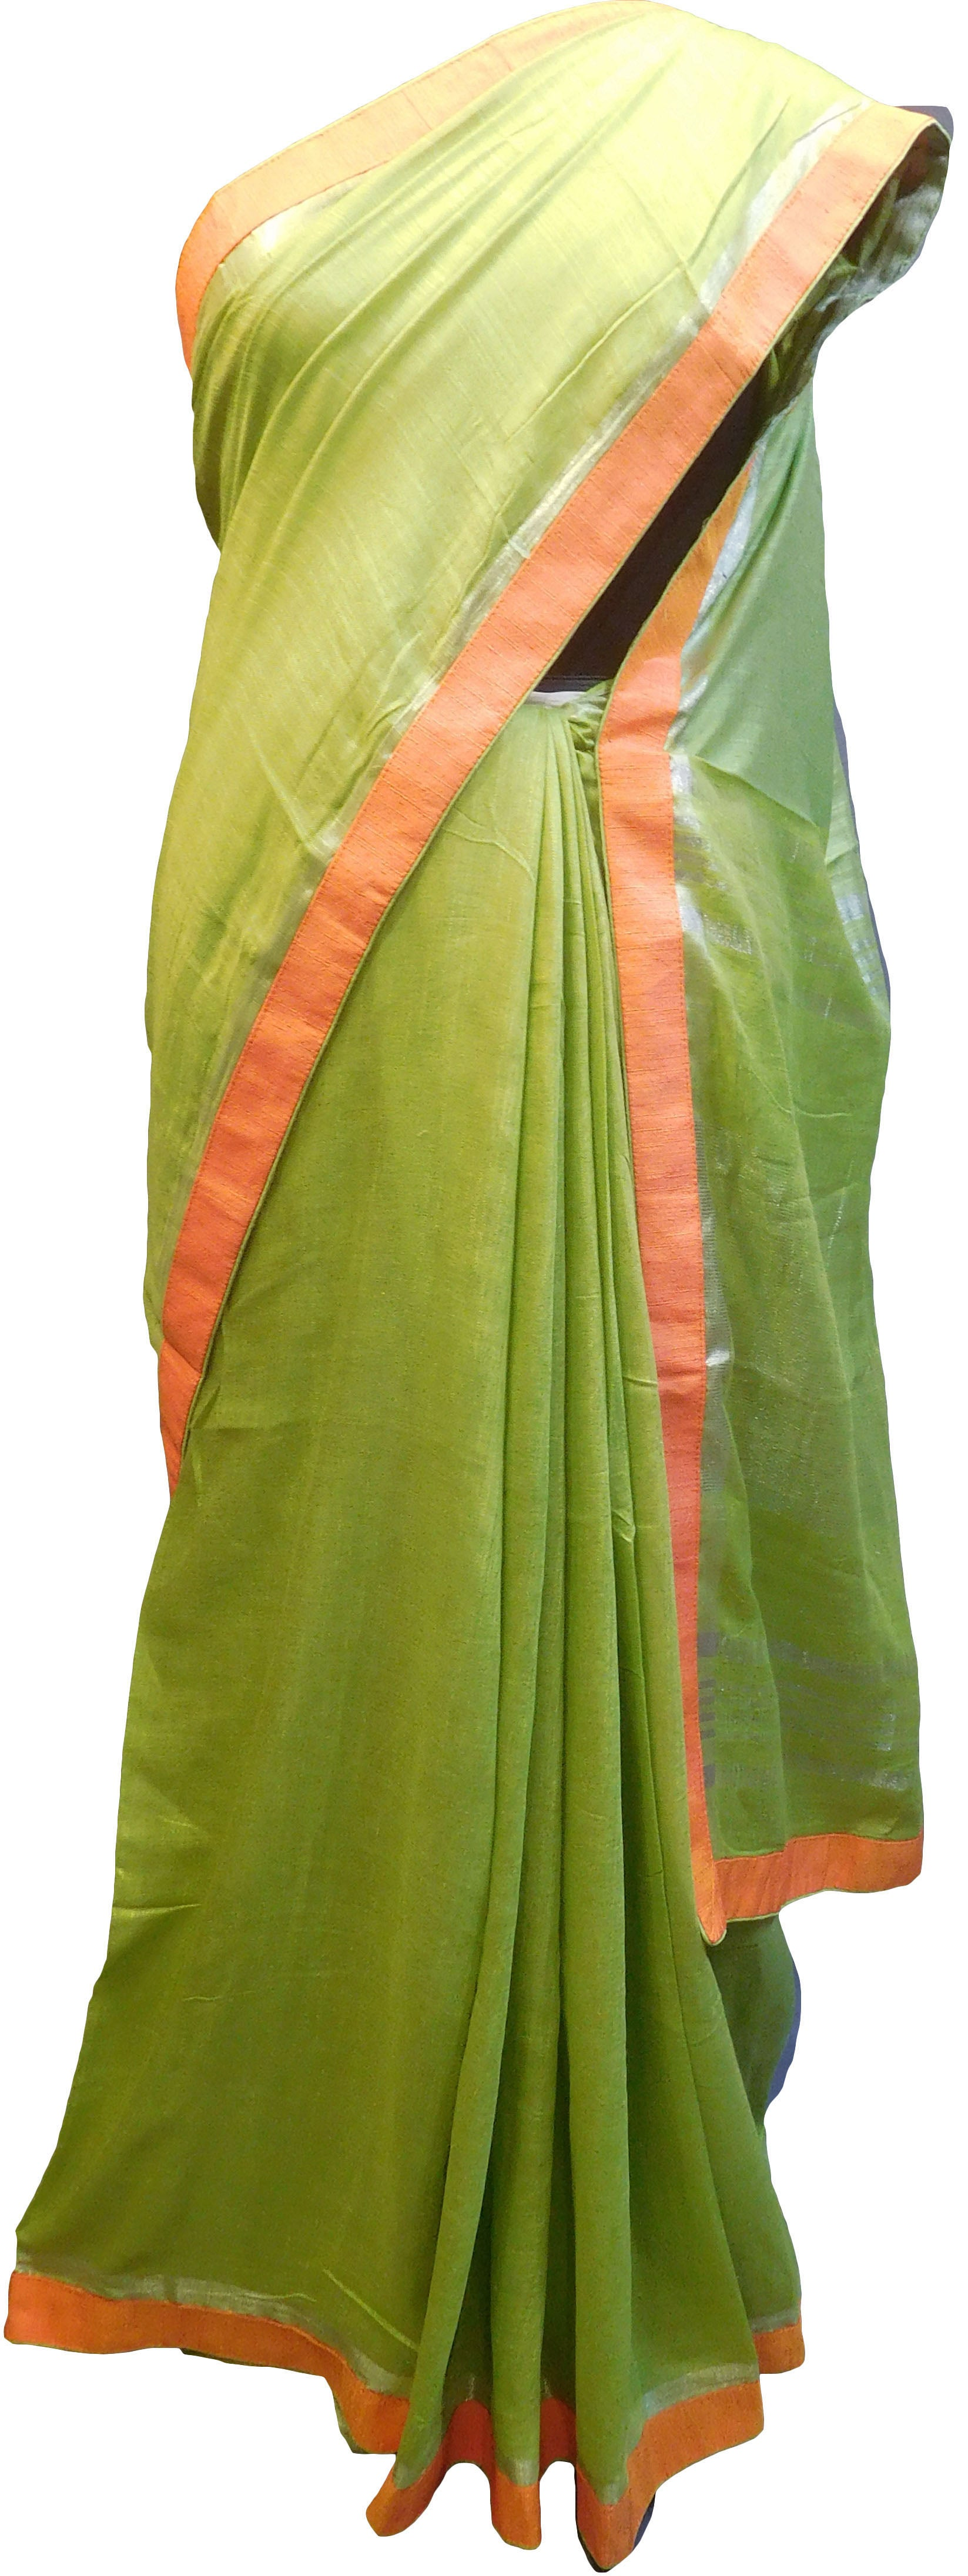 SMSAREE Green Designer Wedding Partywear Handloom Linen Thread & Zari Hand Embroidery Work Bridal Saree Sari With Blouse Piece F129